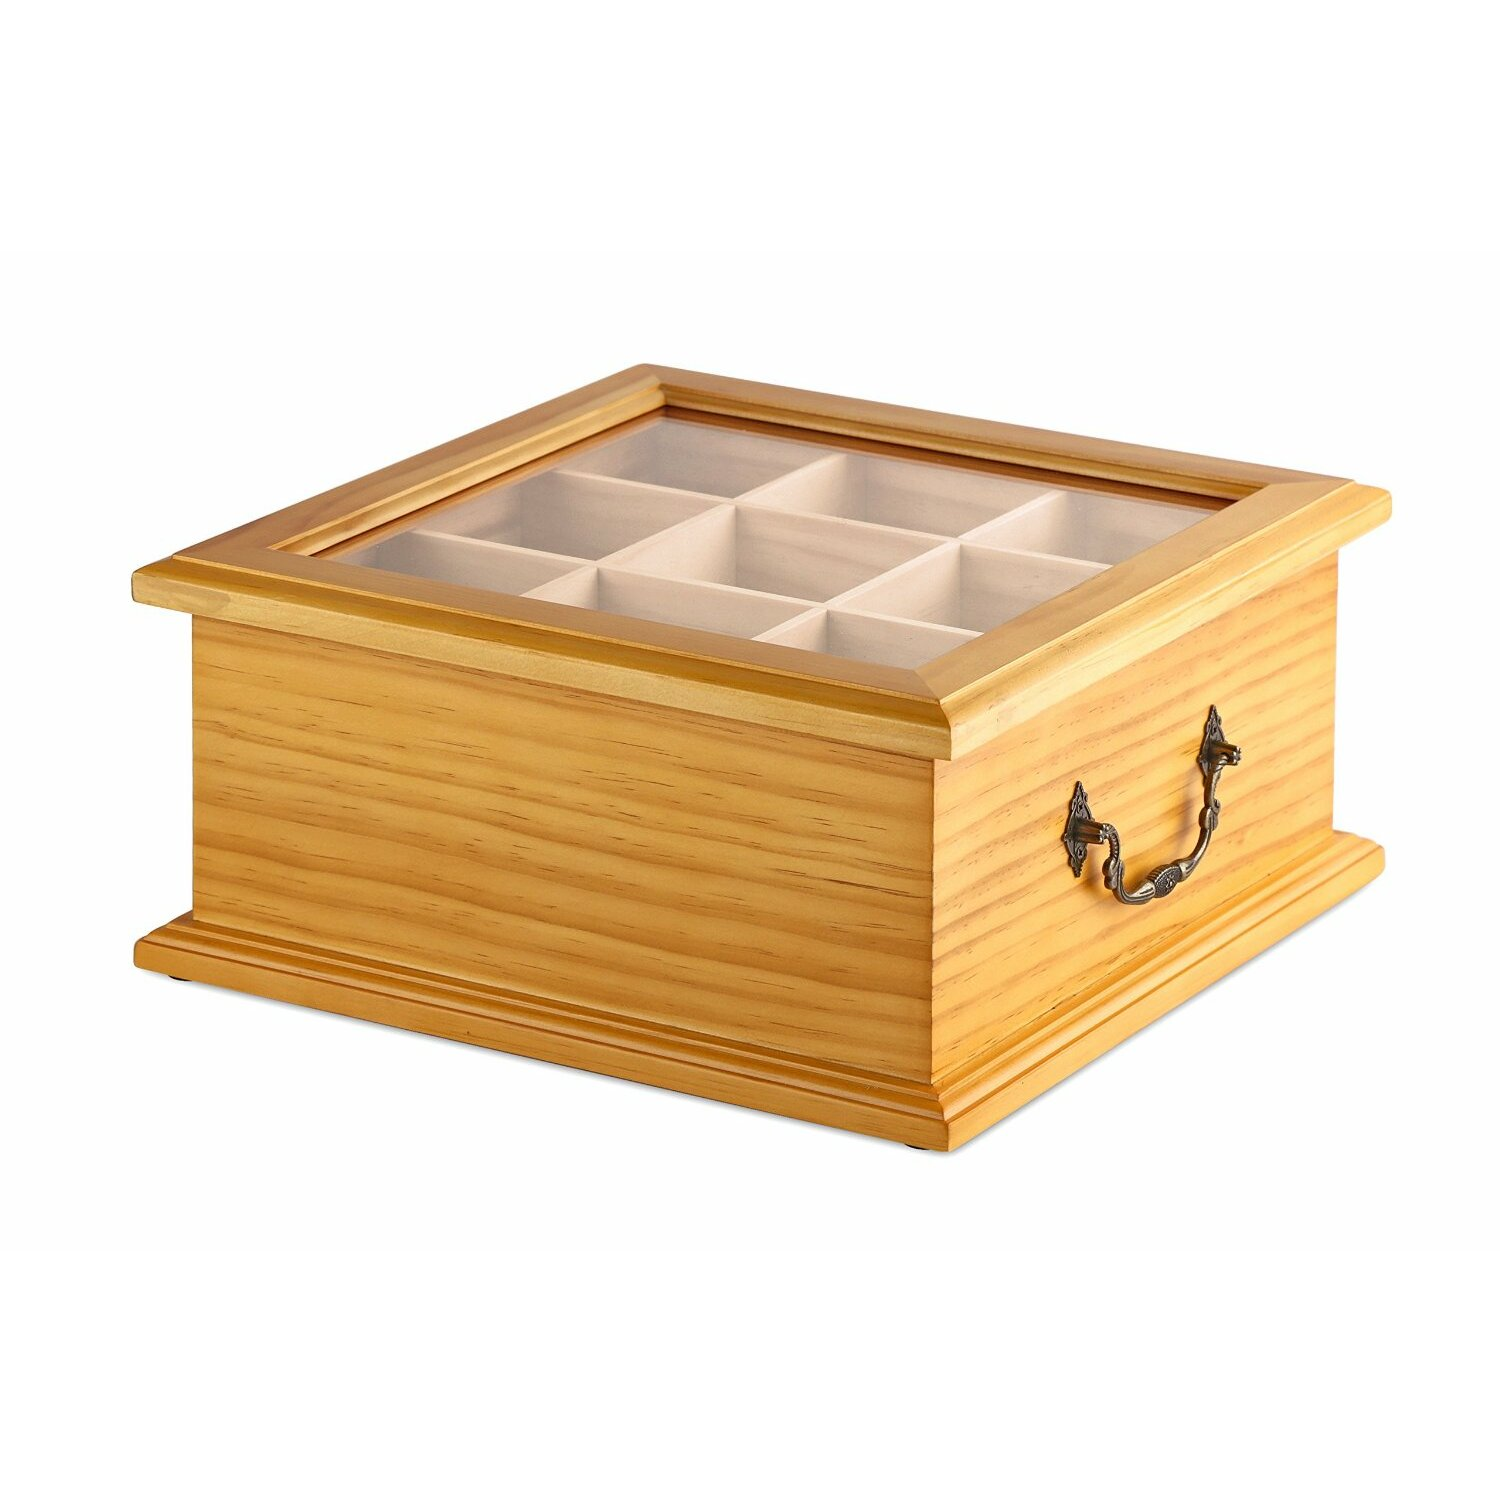 Welledia Wooden Tea Box | Wayfair